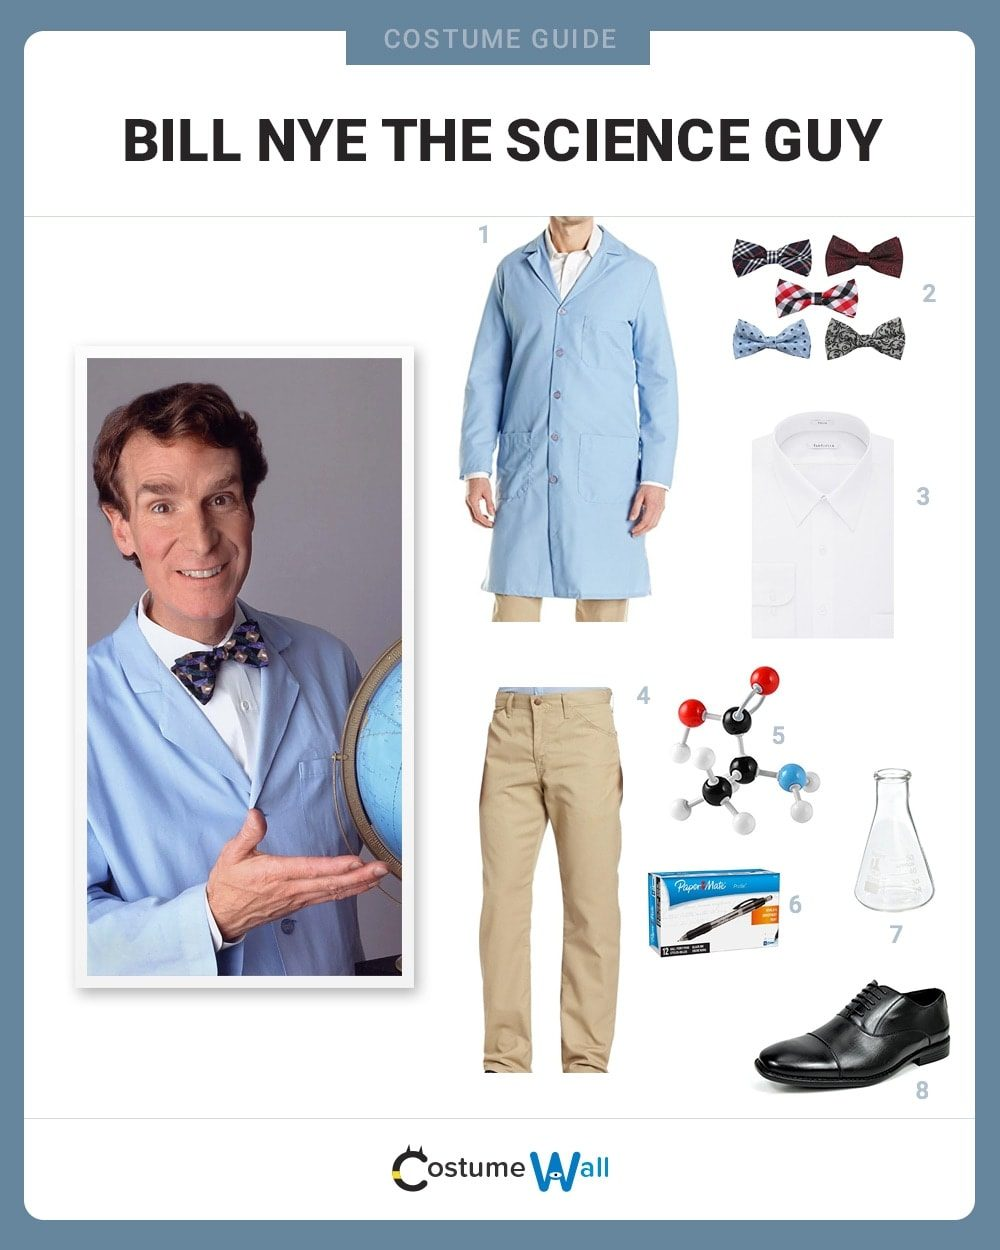 Bill Nye the Science Guy Costume Guide